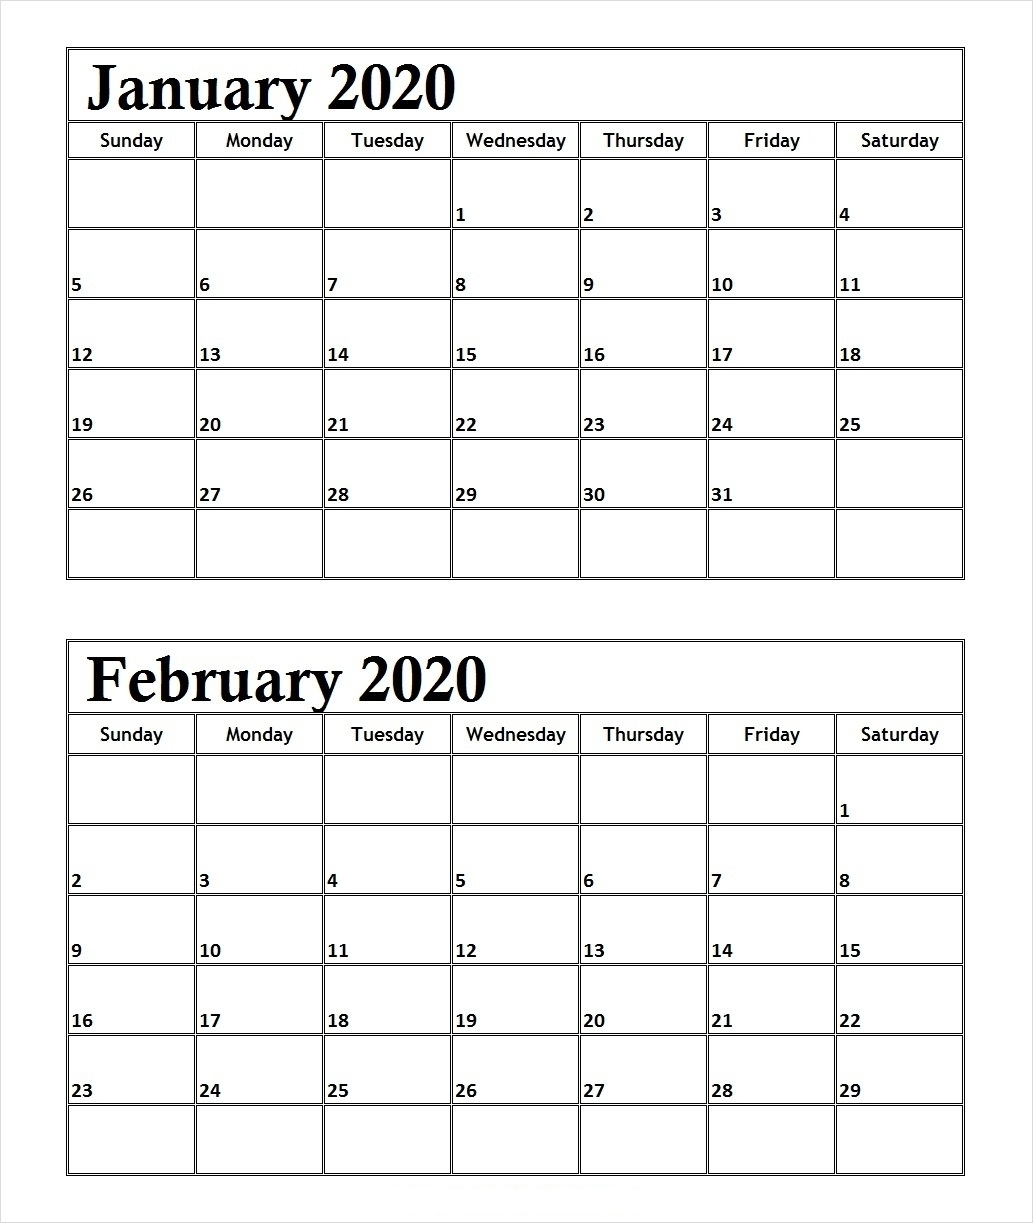 January February 2020 Calendar Daily Calendar Printable | 12